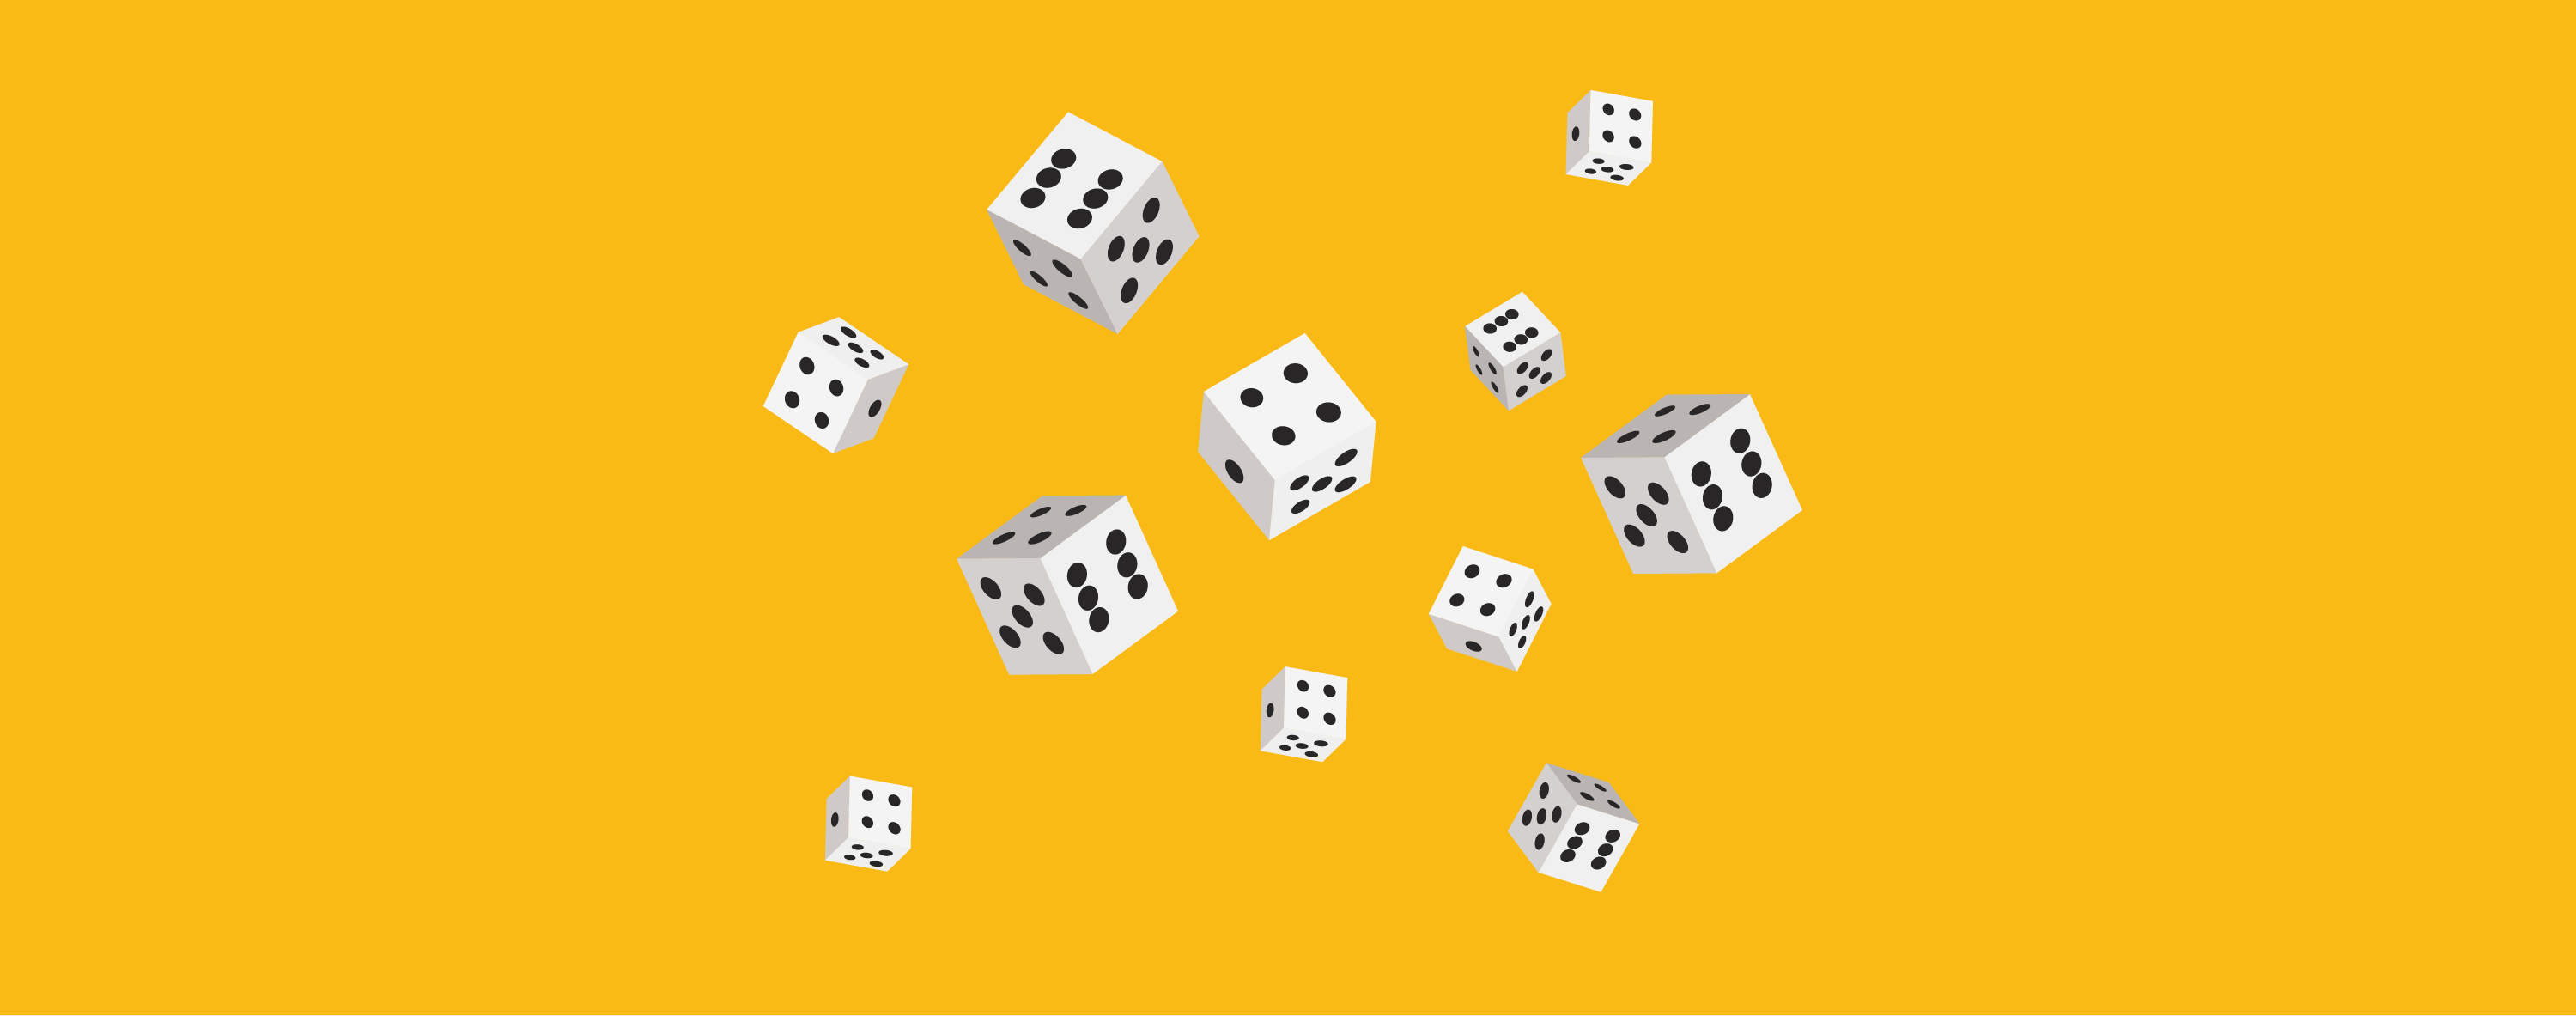 Step into easy payouts with Roll the Dice at Joe Fortune.